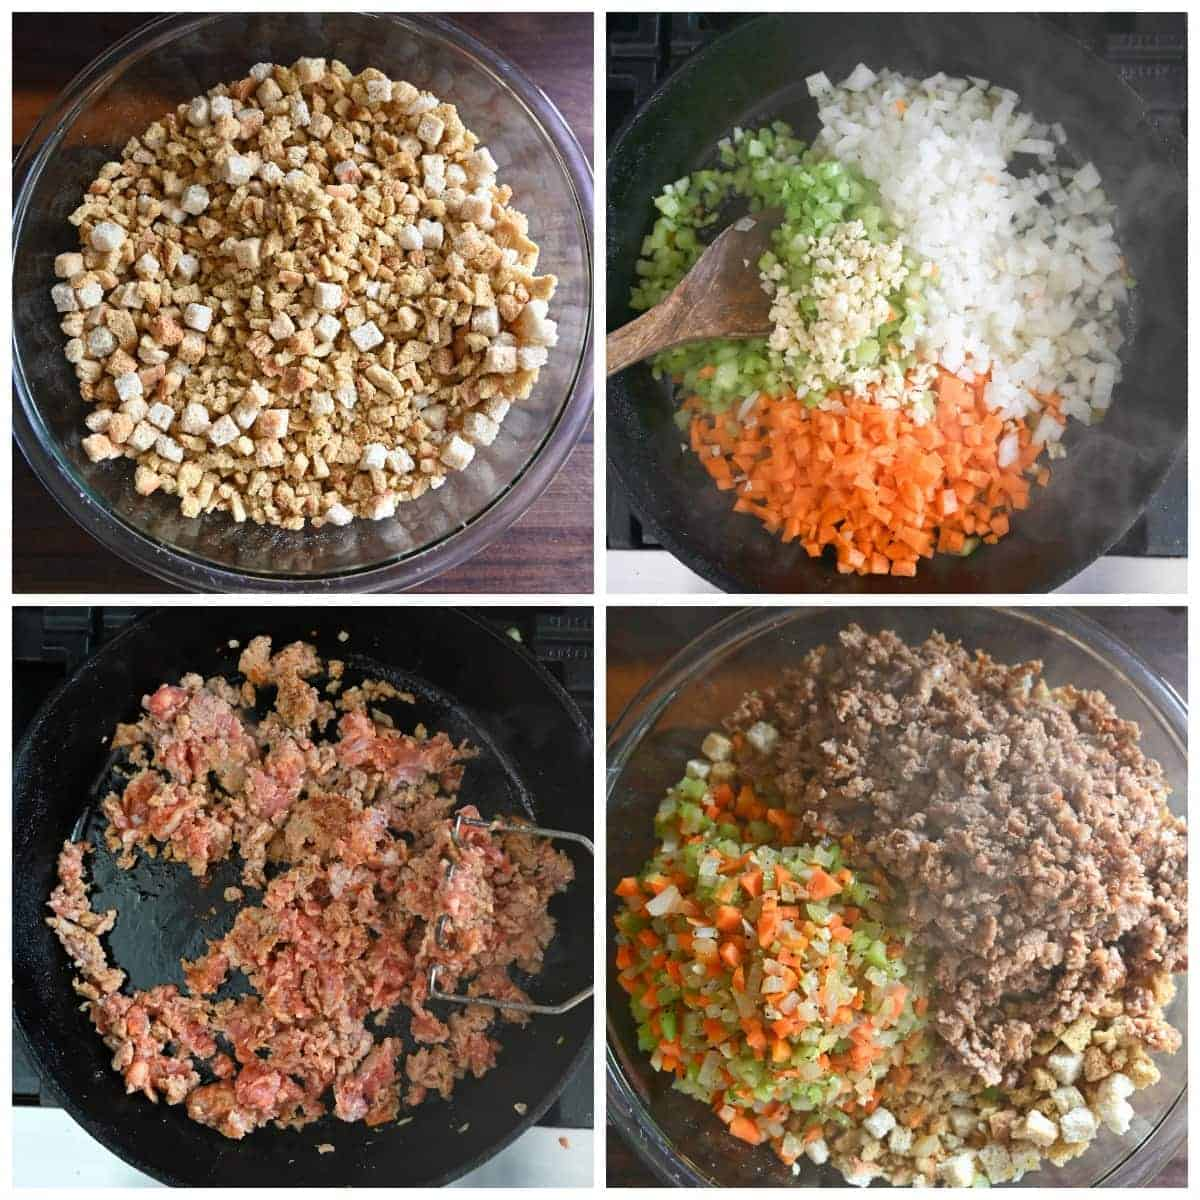 Four process photos. First one, cronbread cubes in a bowl. Second one, onions, carrots, celery and garlic sauteed in a pan. Third one, Italian sausage sauteed in a pan. Fourth one, cooked sausage and veggies added to a bowl.